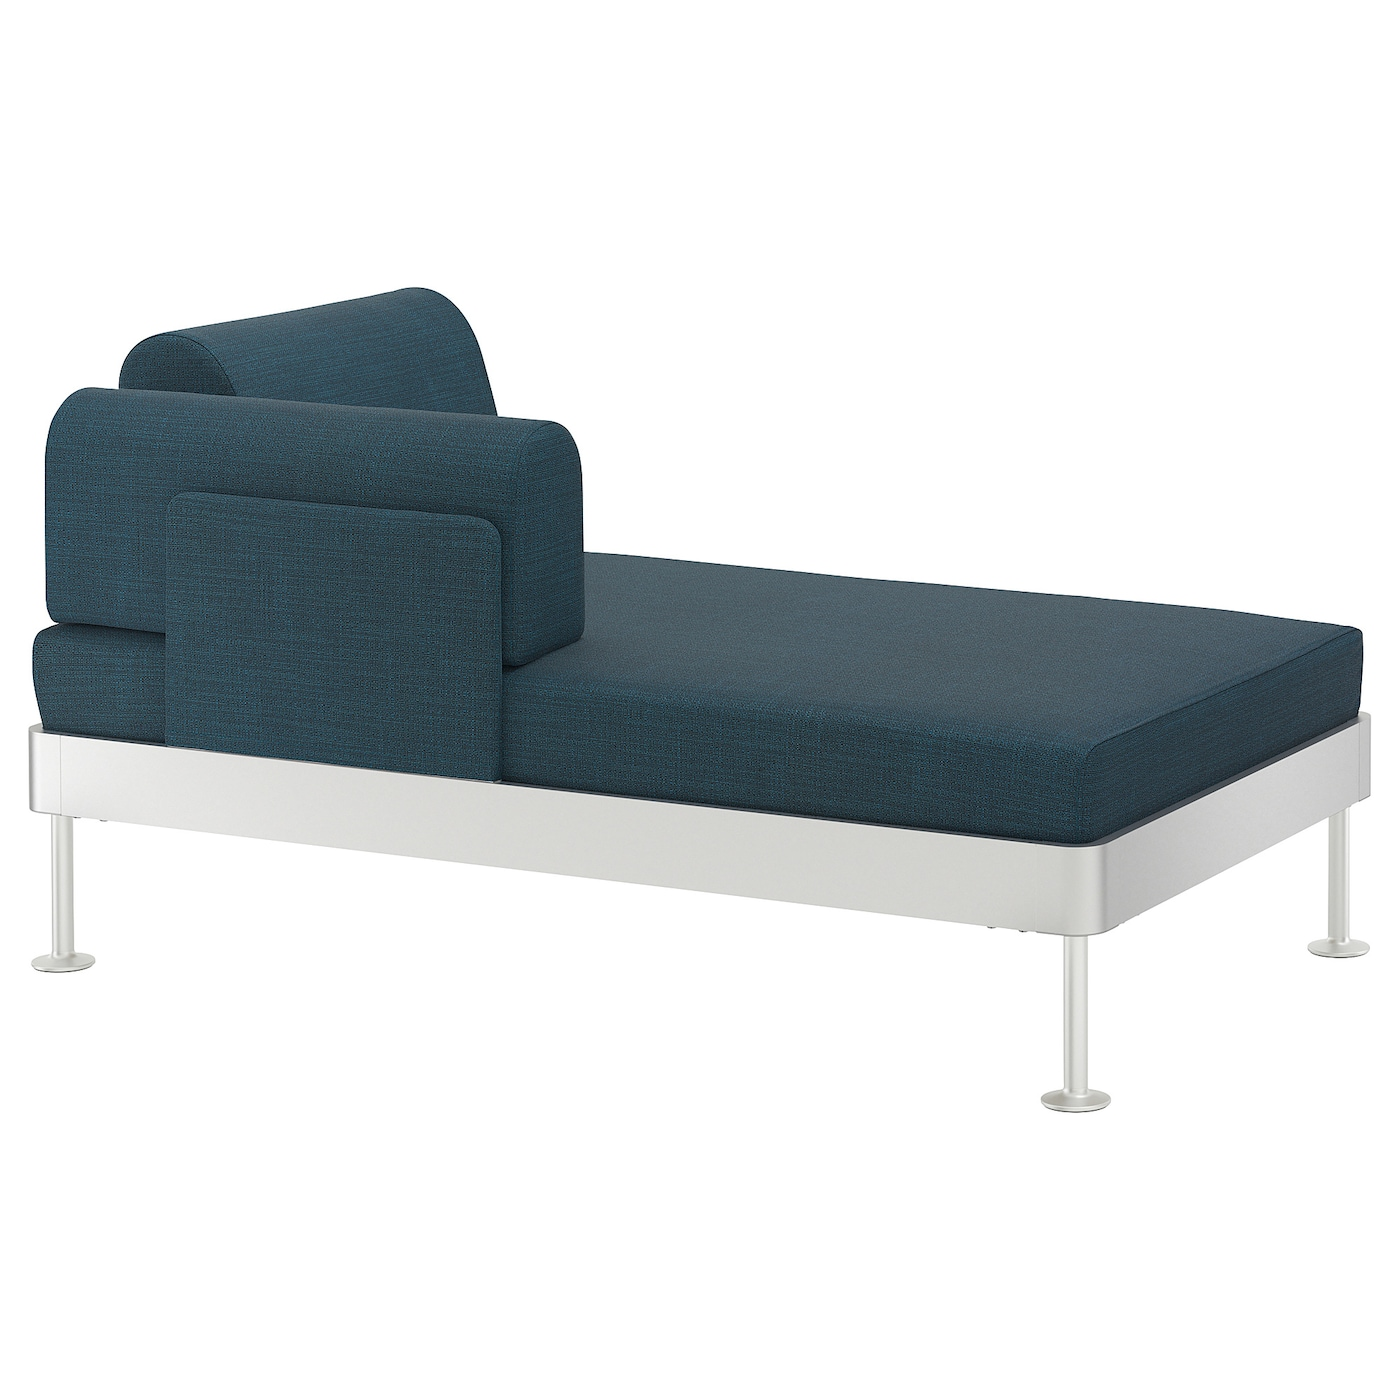 delaktig chaise longue with armrest hillared dark blue ikea. Black Bedroom Furniture Sets. Home Design Ideas